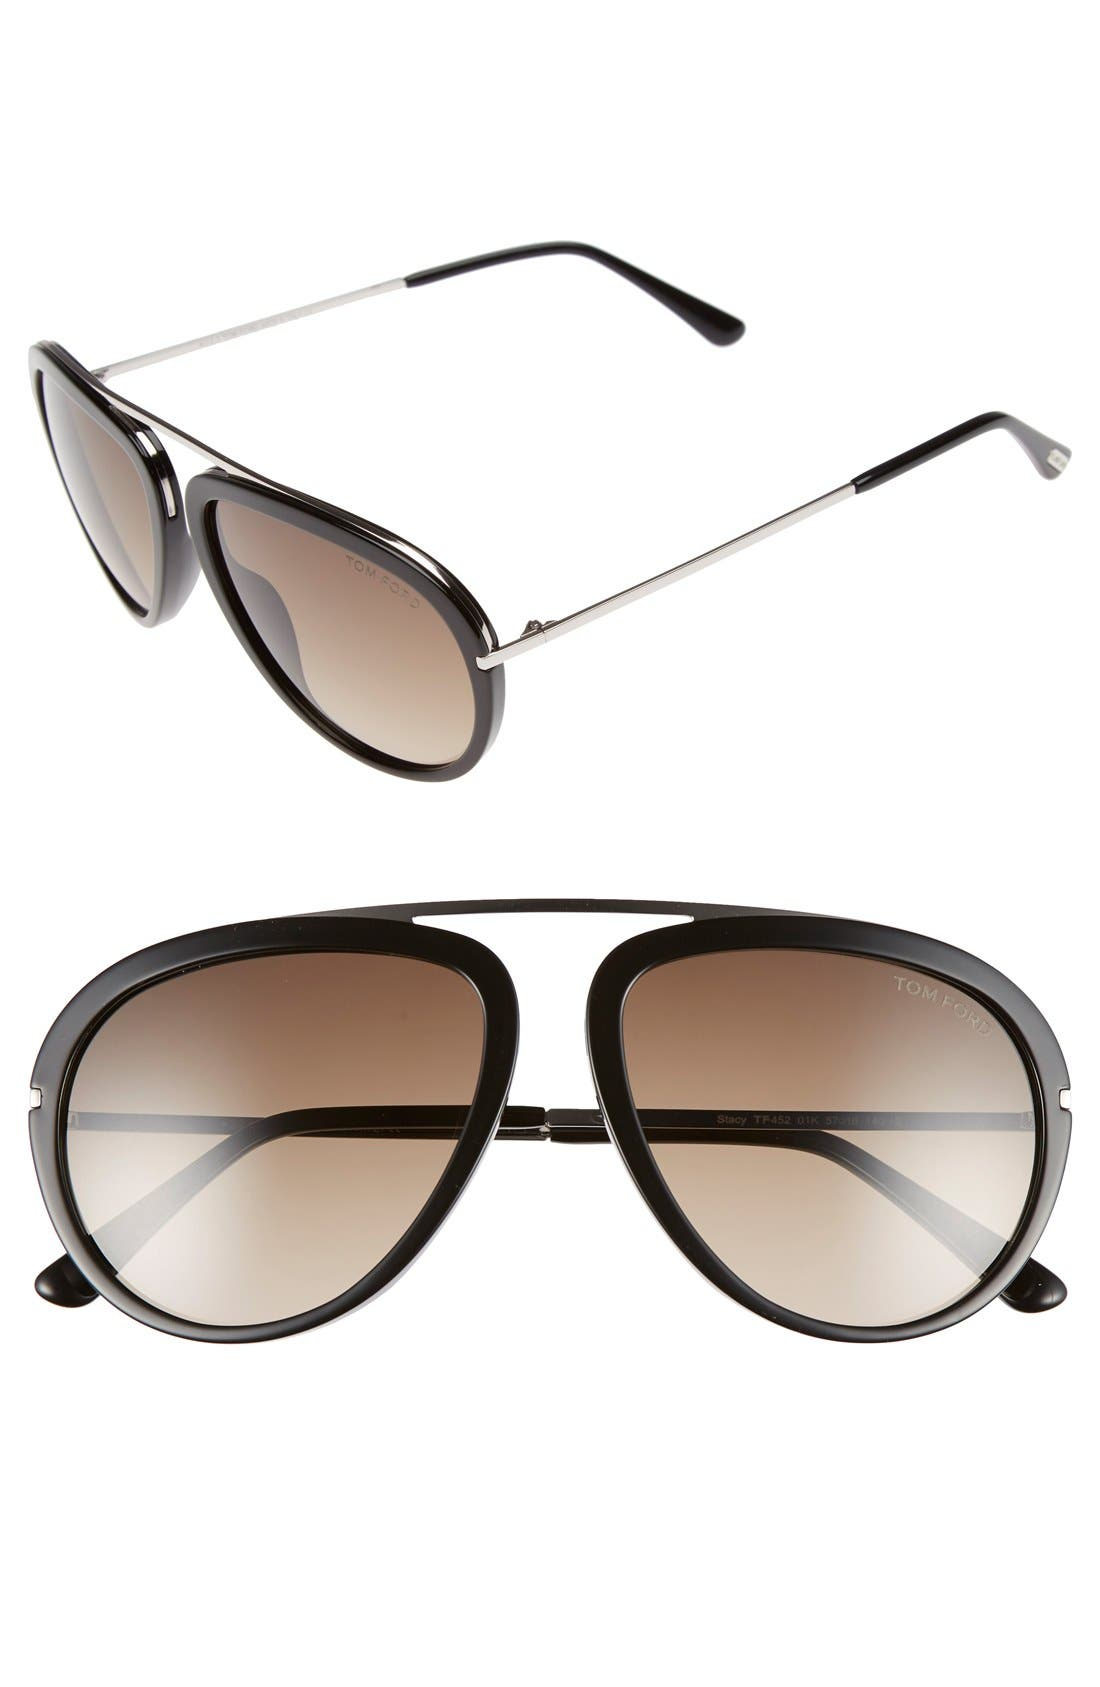 Alternate Image 1 Selected - Tom Ford 'Stacy' 57mm Aviator Sunglasses